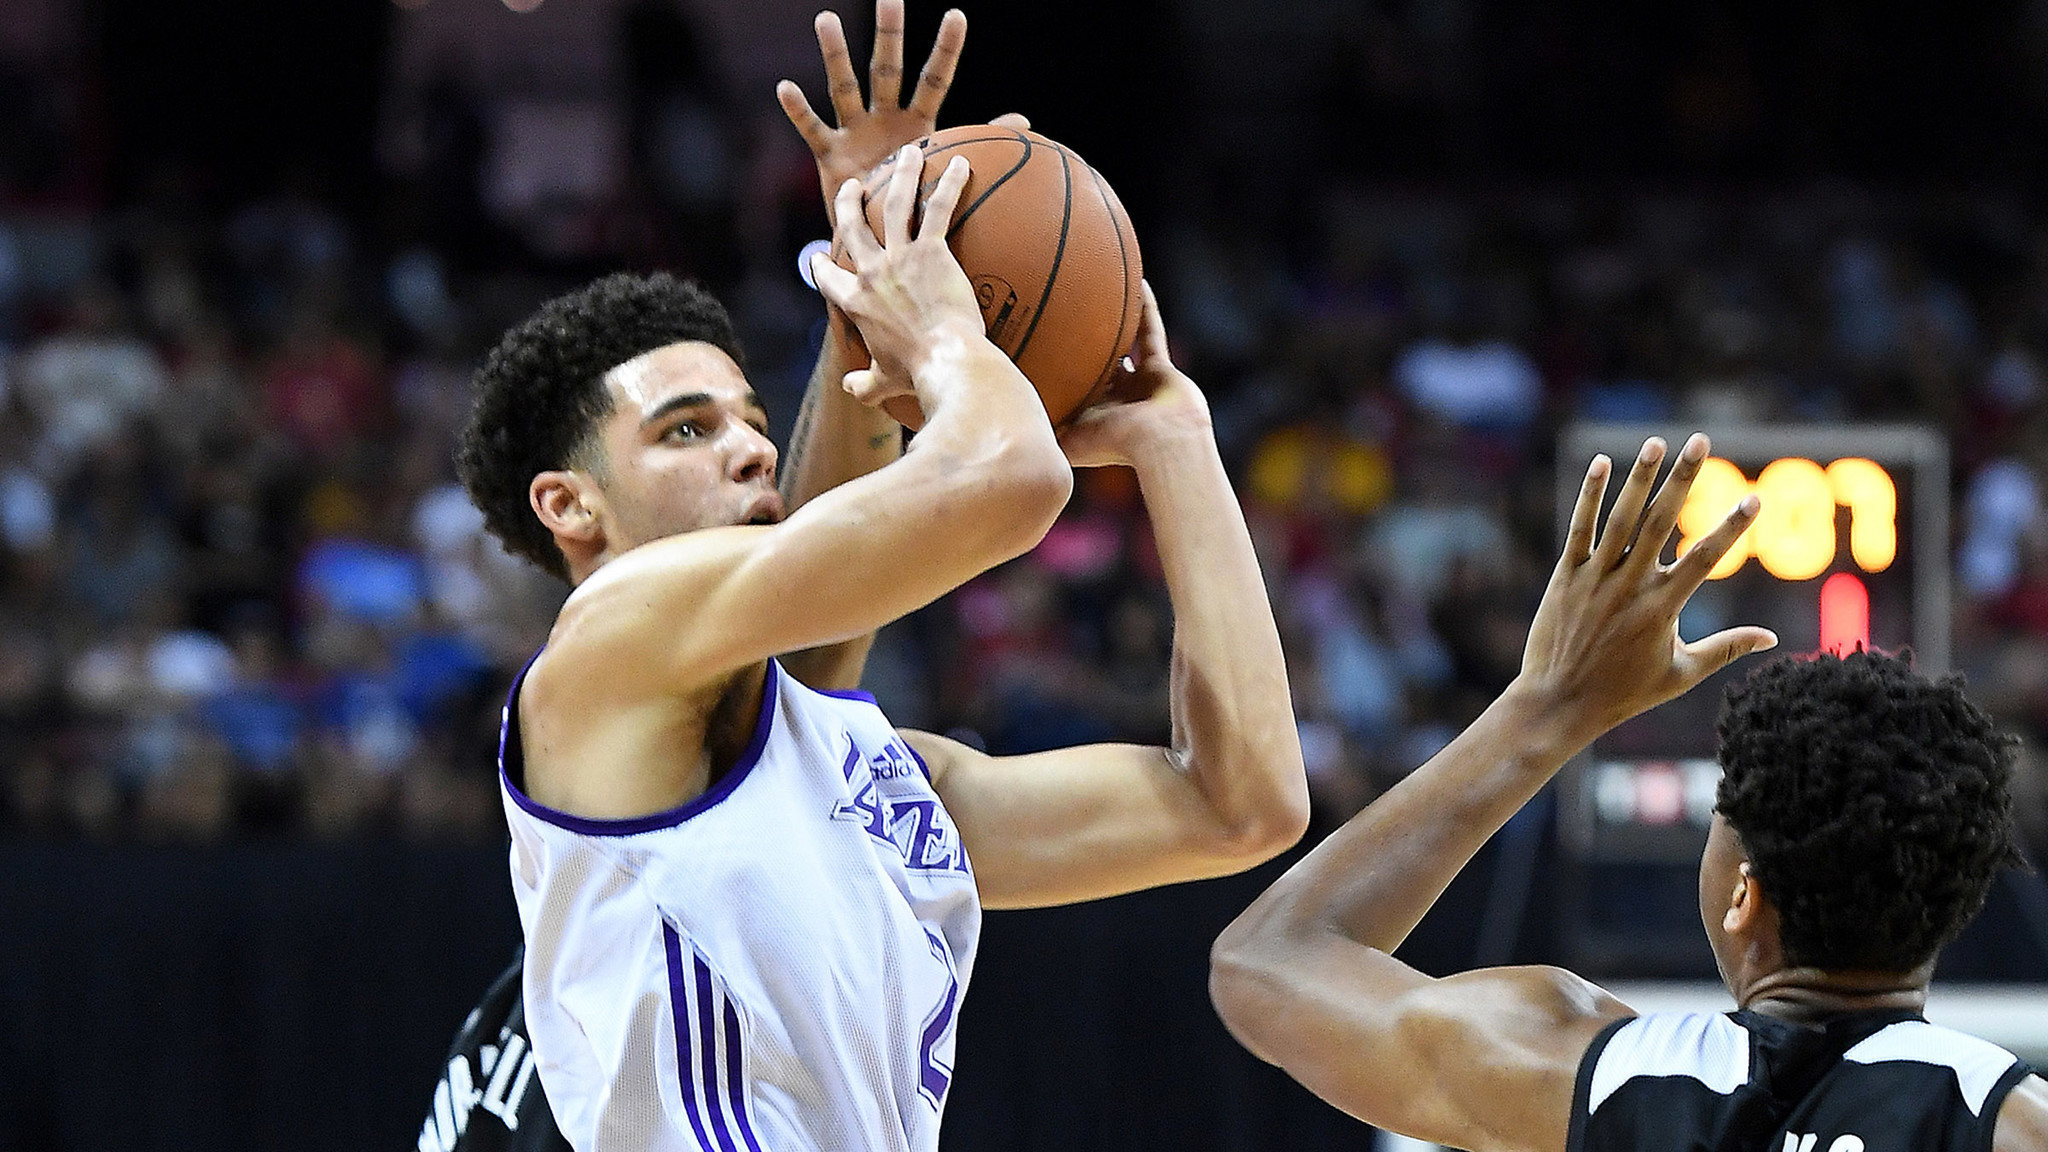 8e8774435bbb1 latimes.com Dad and son agree: Only way Lonzo Ball can go from debut is up